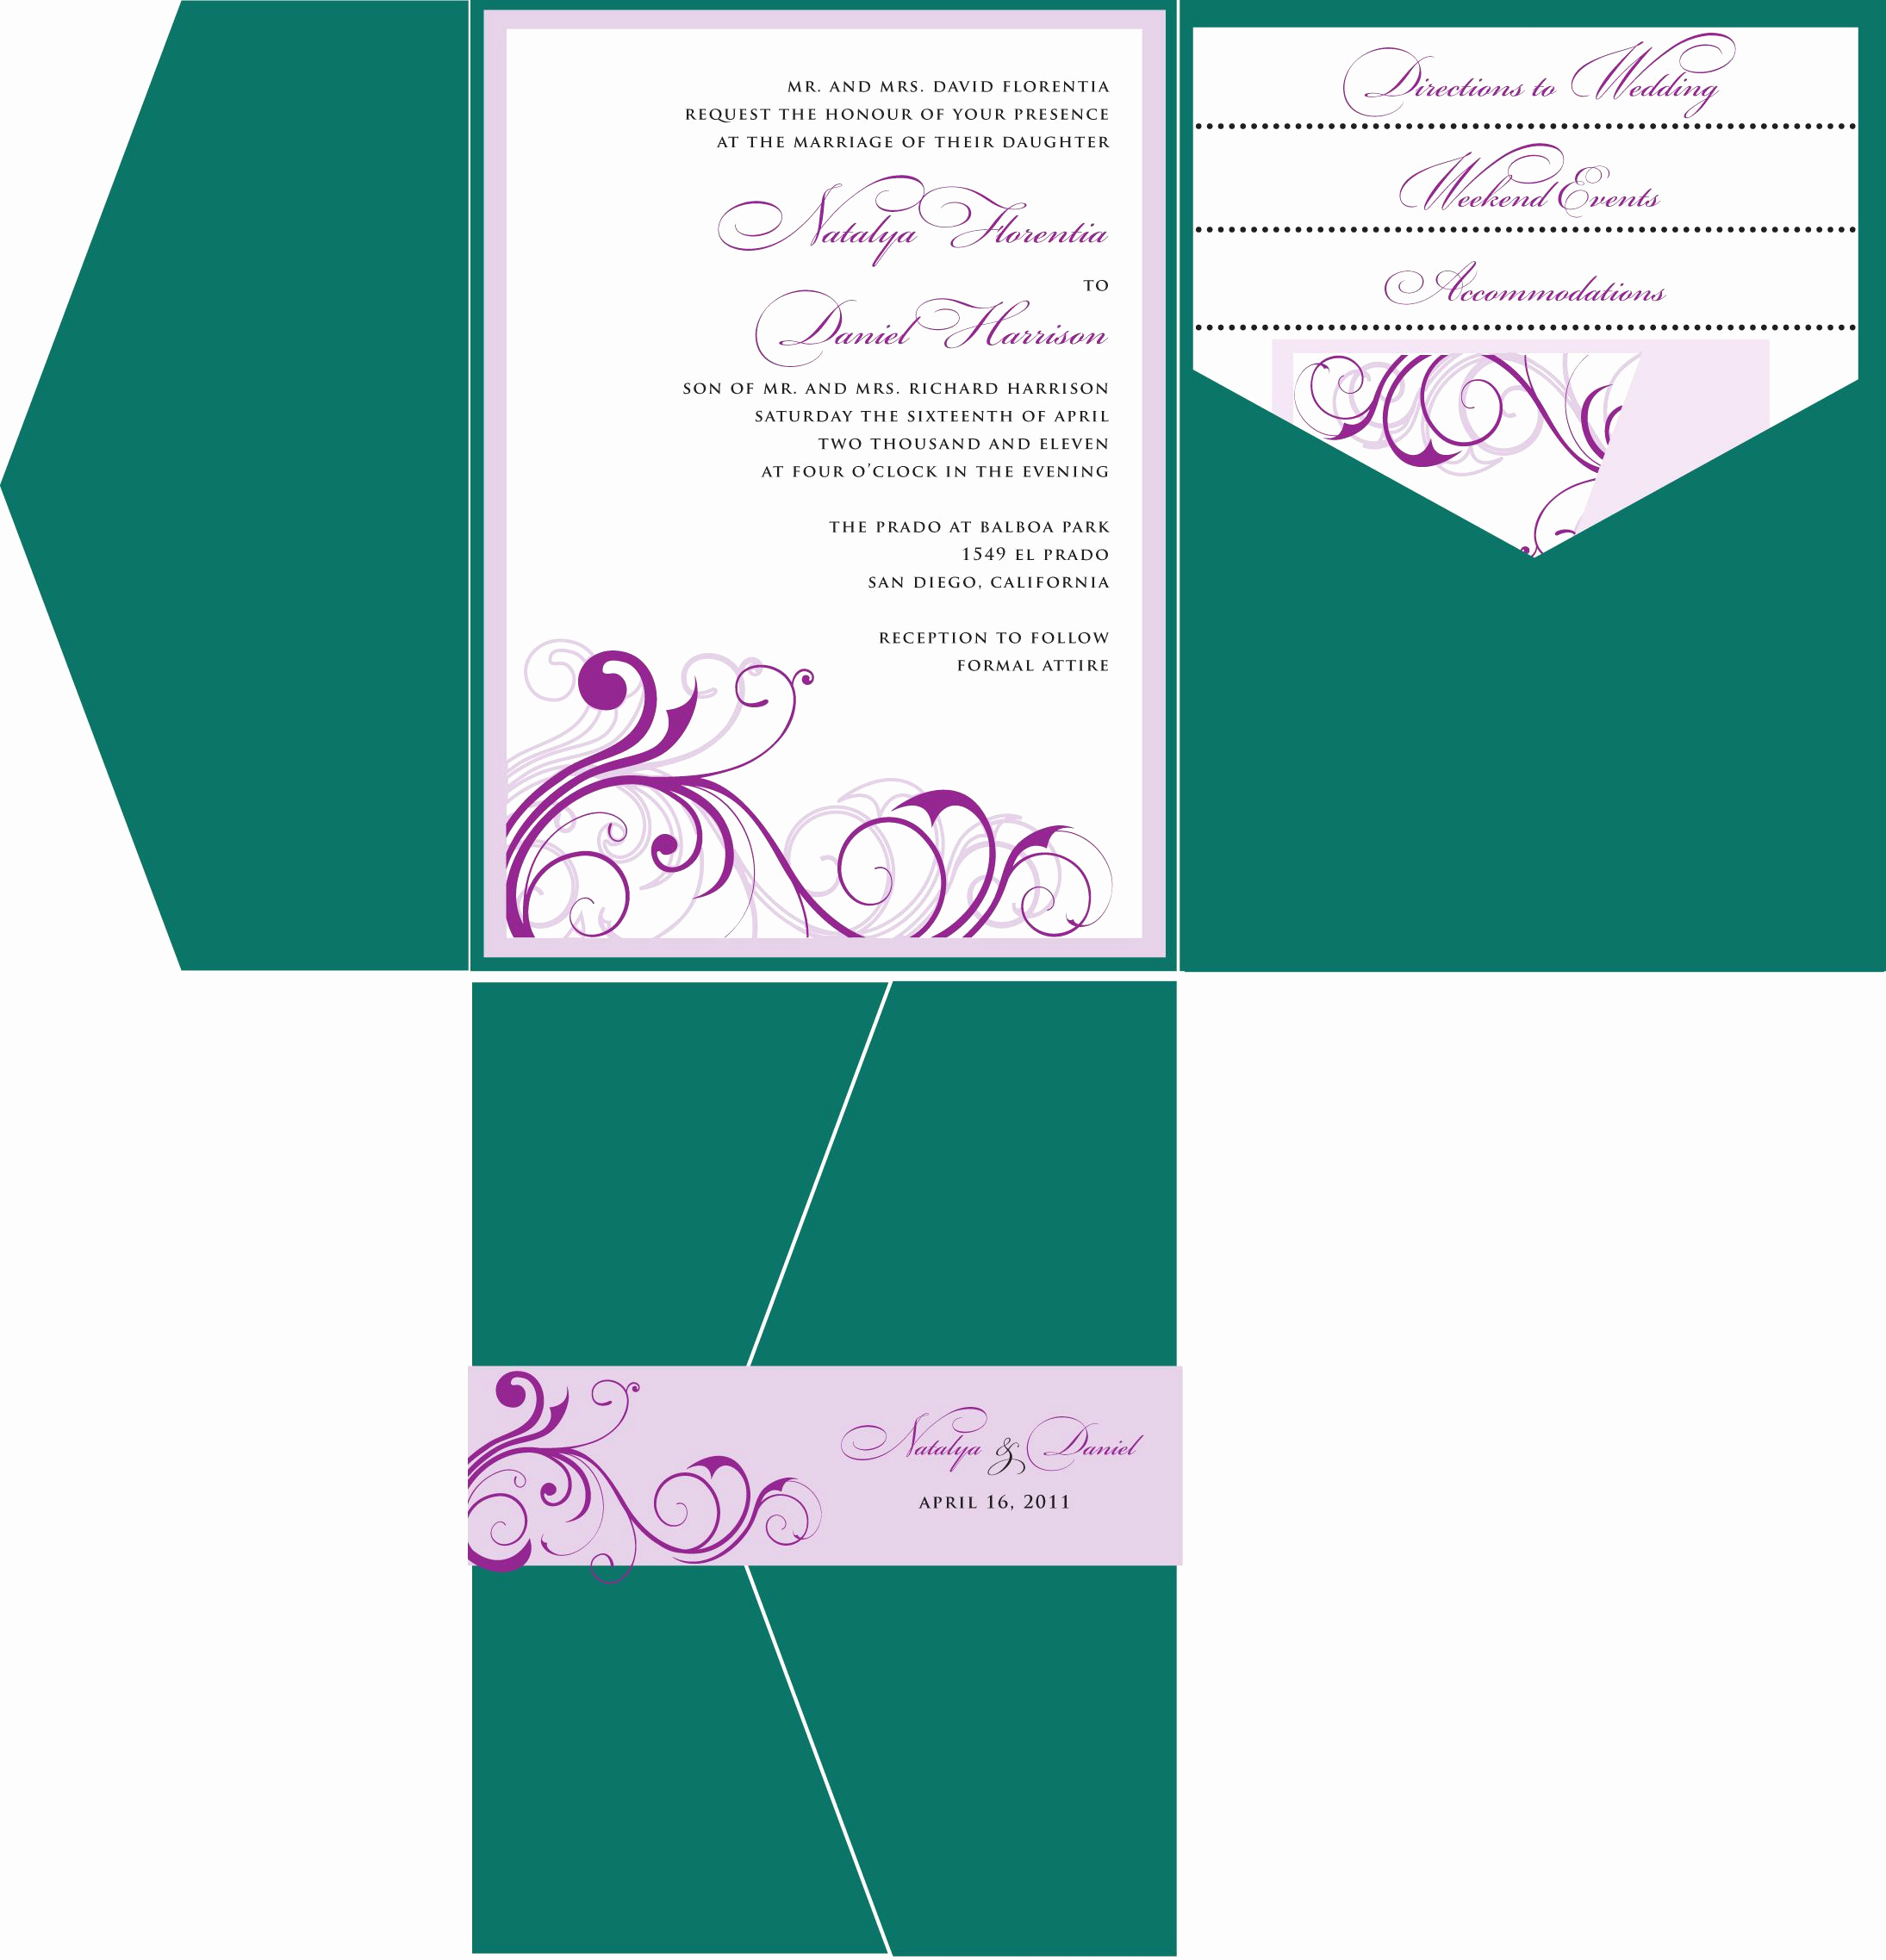 Wedding Invitation Templates Word New Wedding Invitations Template Wedding Invitations